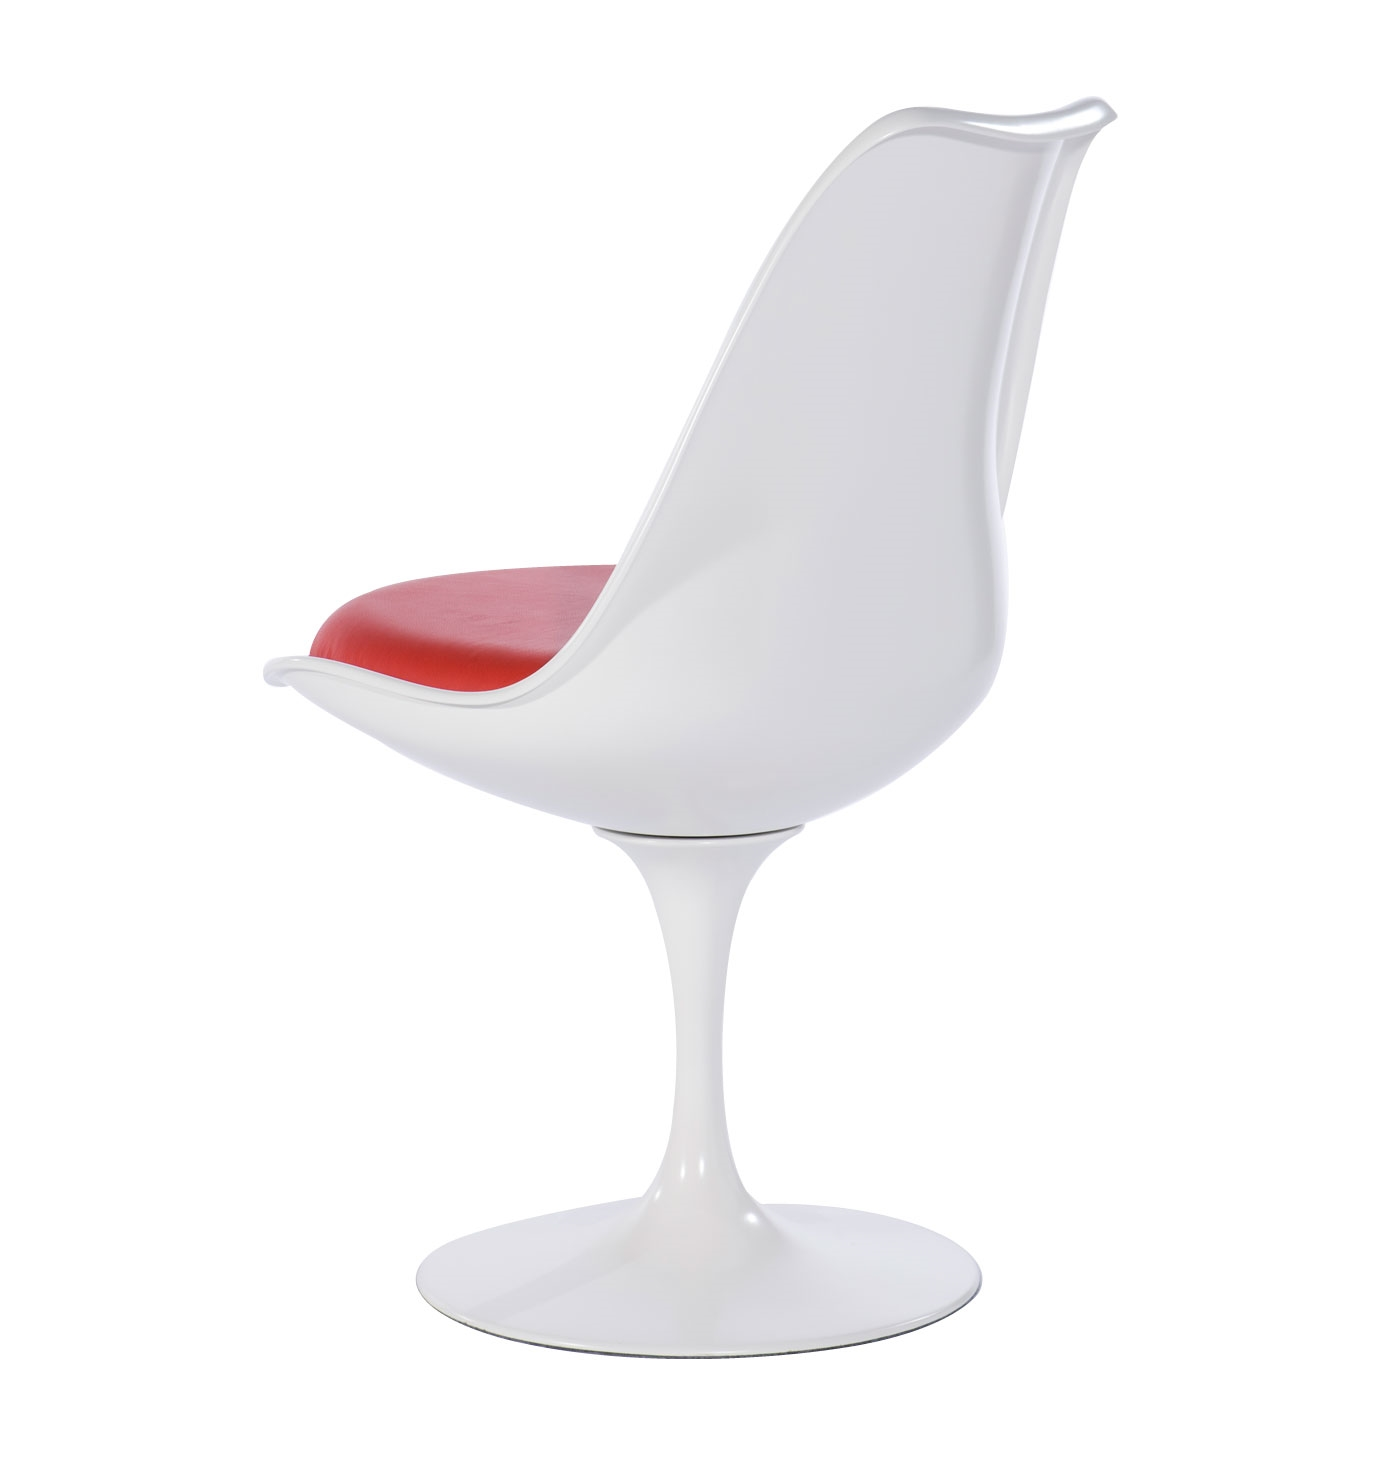 ... Reply Eero Saarinen Tulip Chair White With Cuscion Red ...